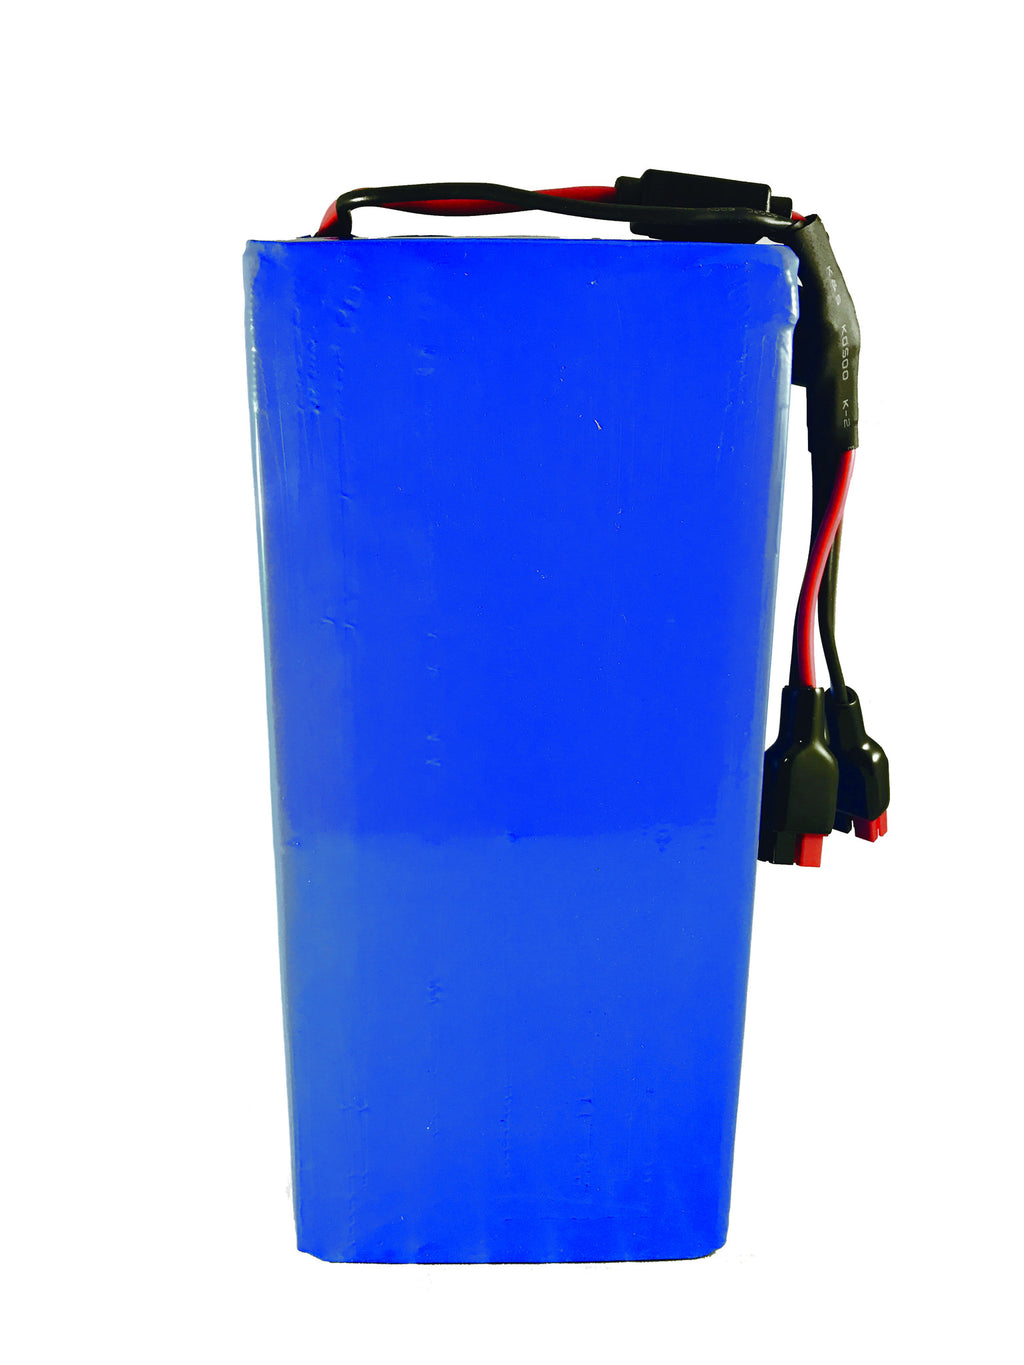 72V 15Ah Battery Pack - EbikeMarketplace